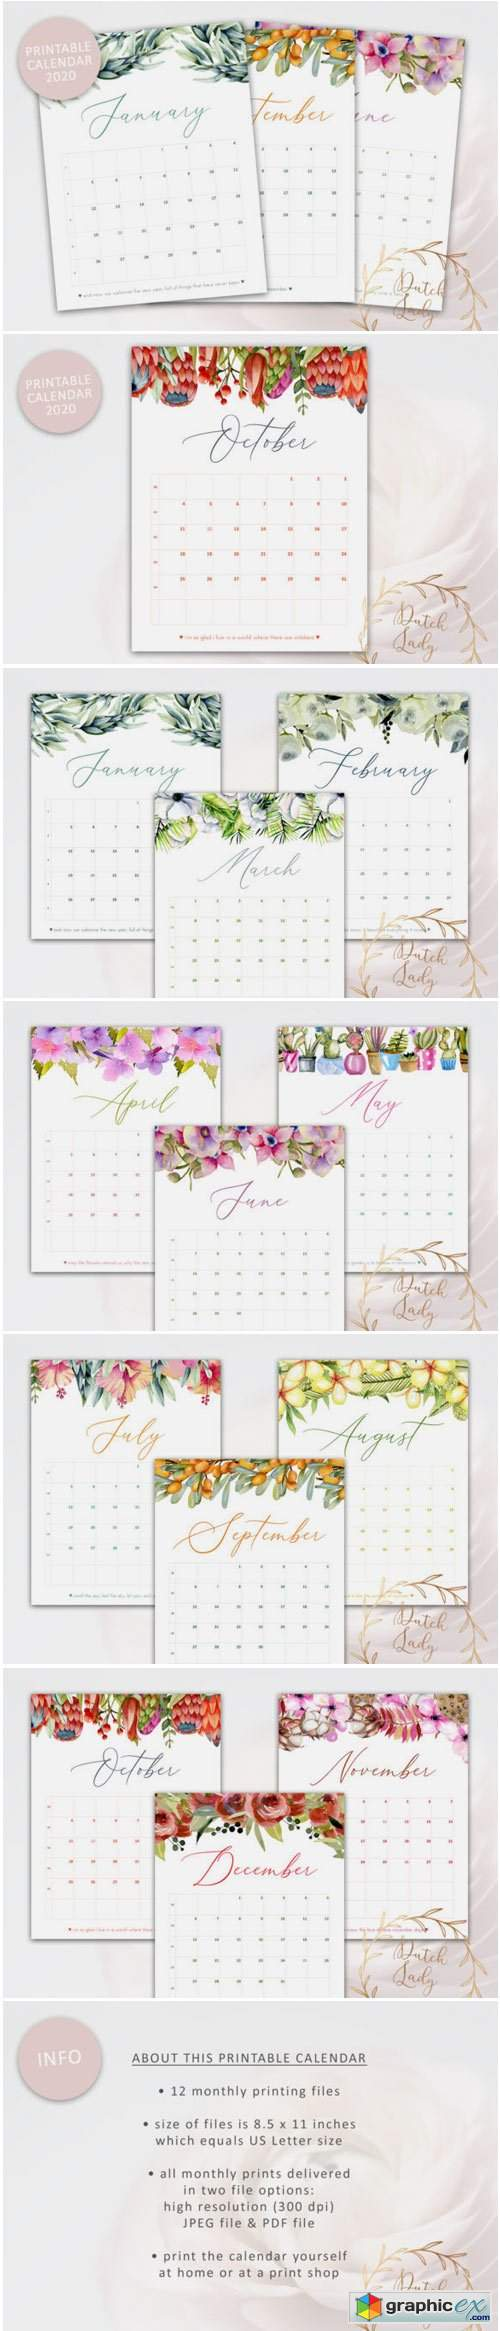 Printable Monthly Calendar 2020 Florals